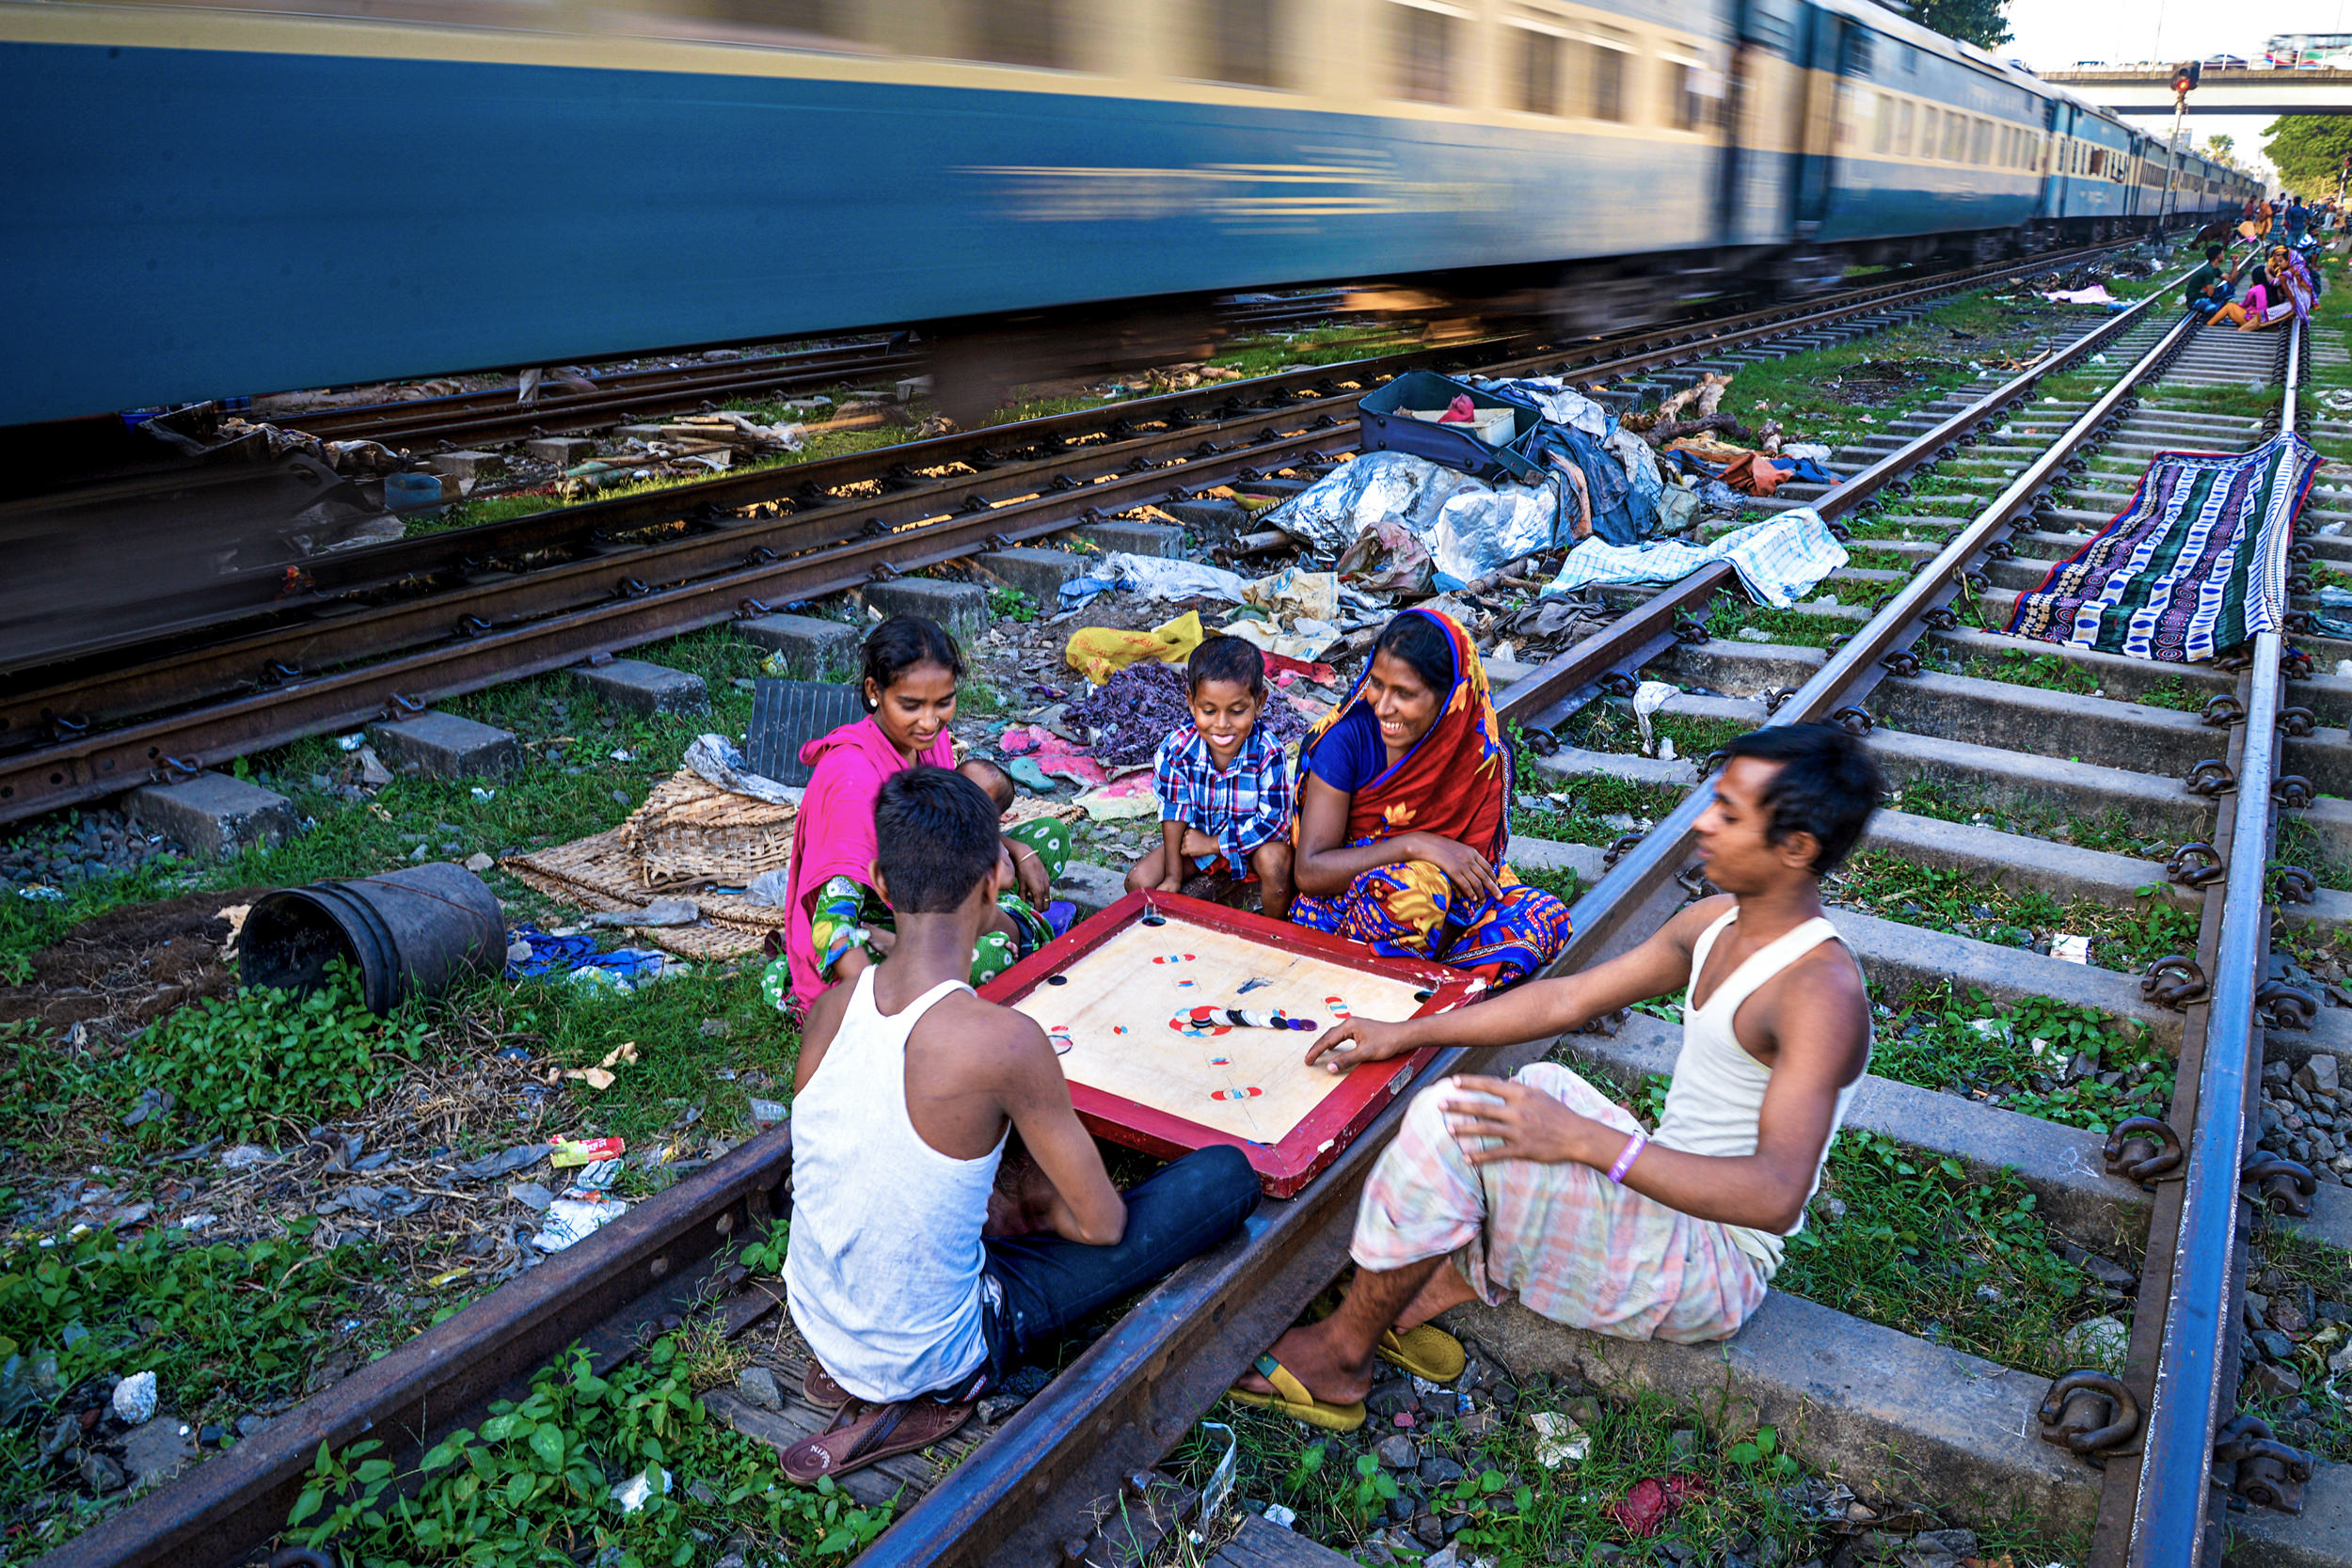 color street photography of a family and train in India